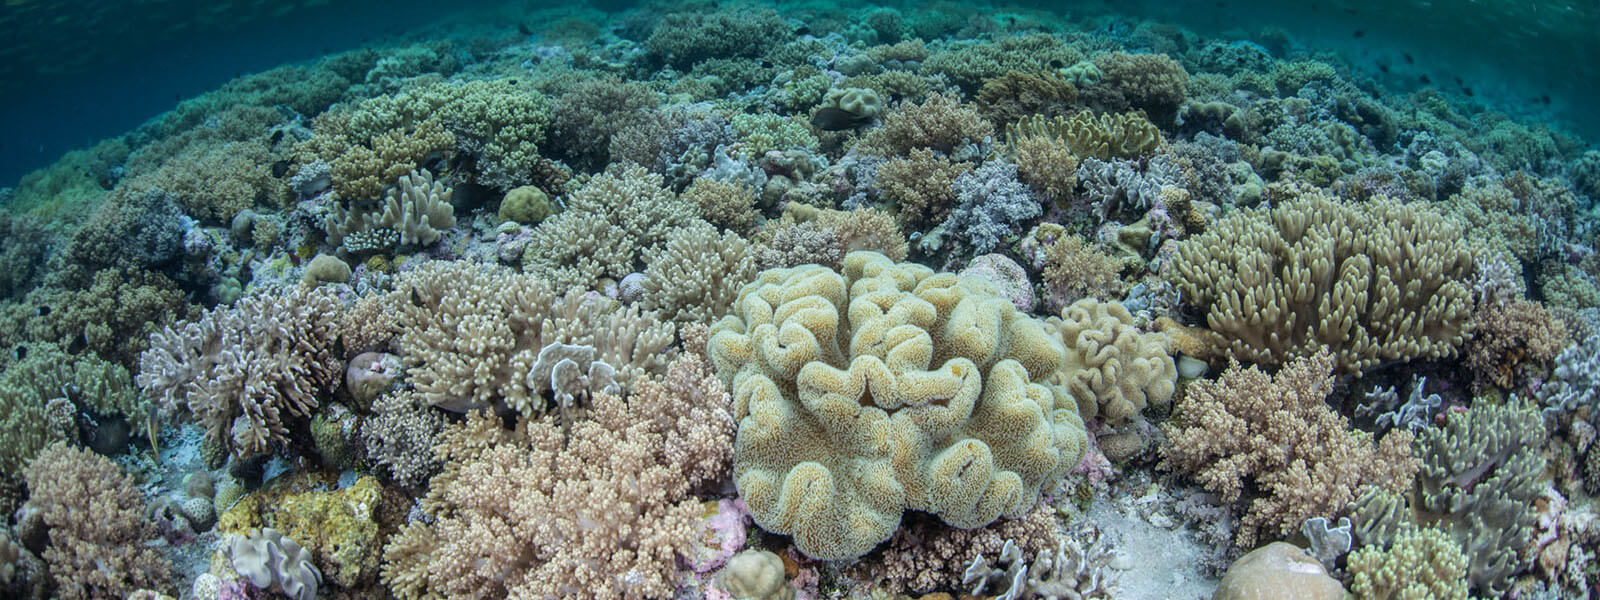 We see a lot of soft corals on our coral triangle adventures snorkeling tour to Wakatobi